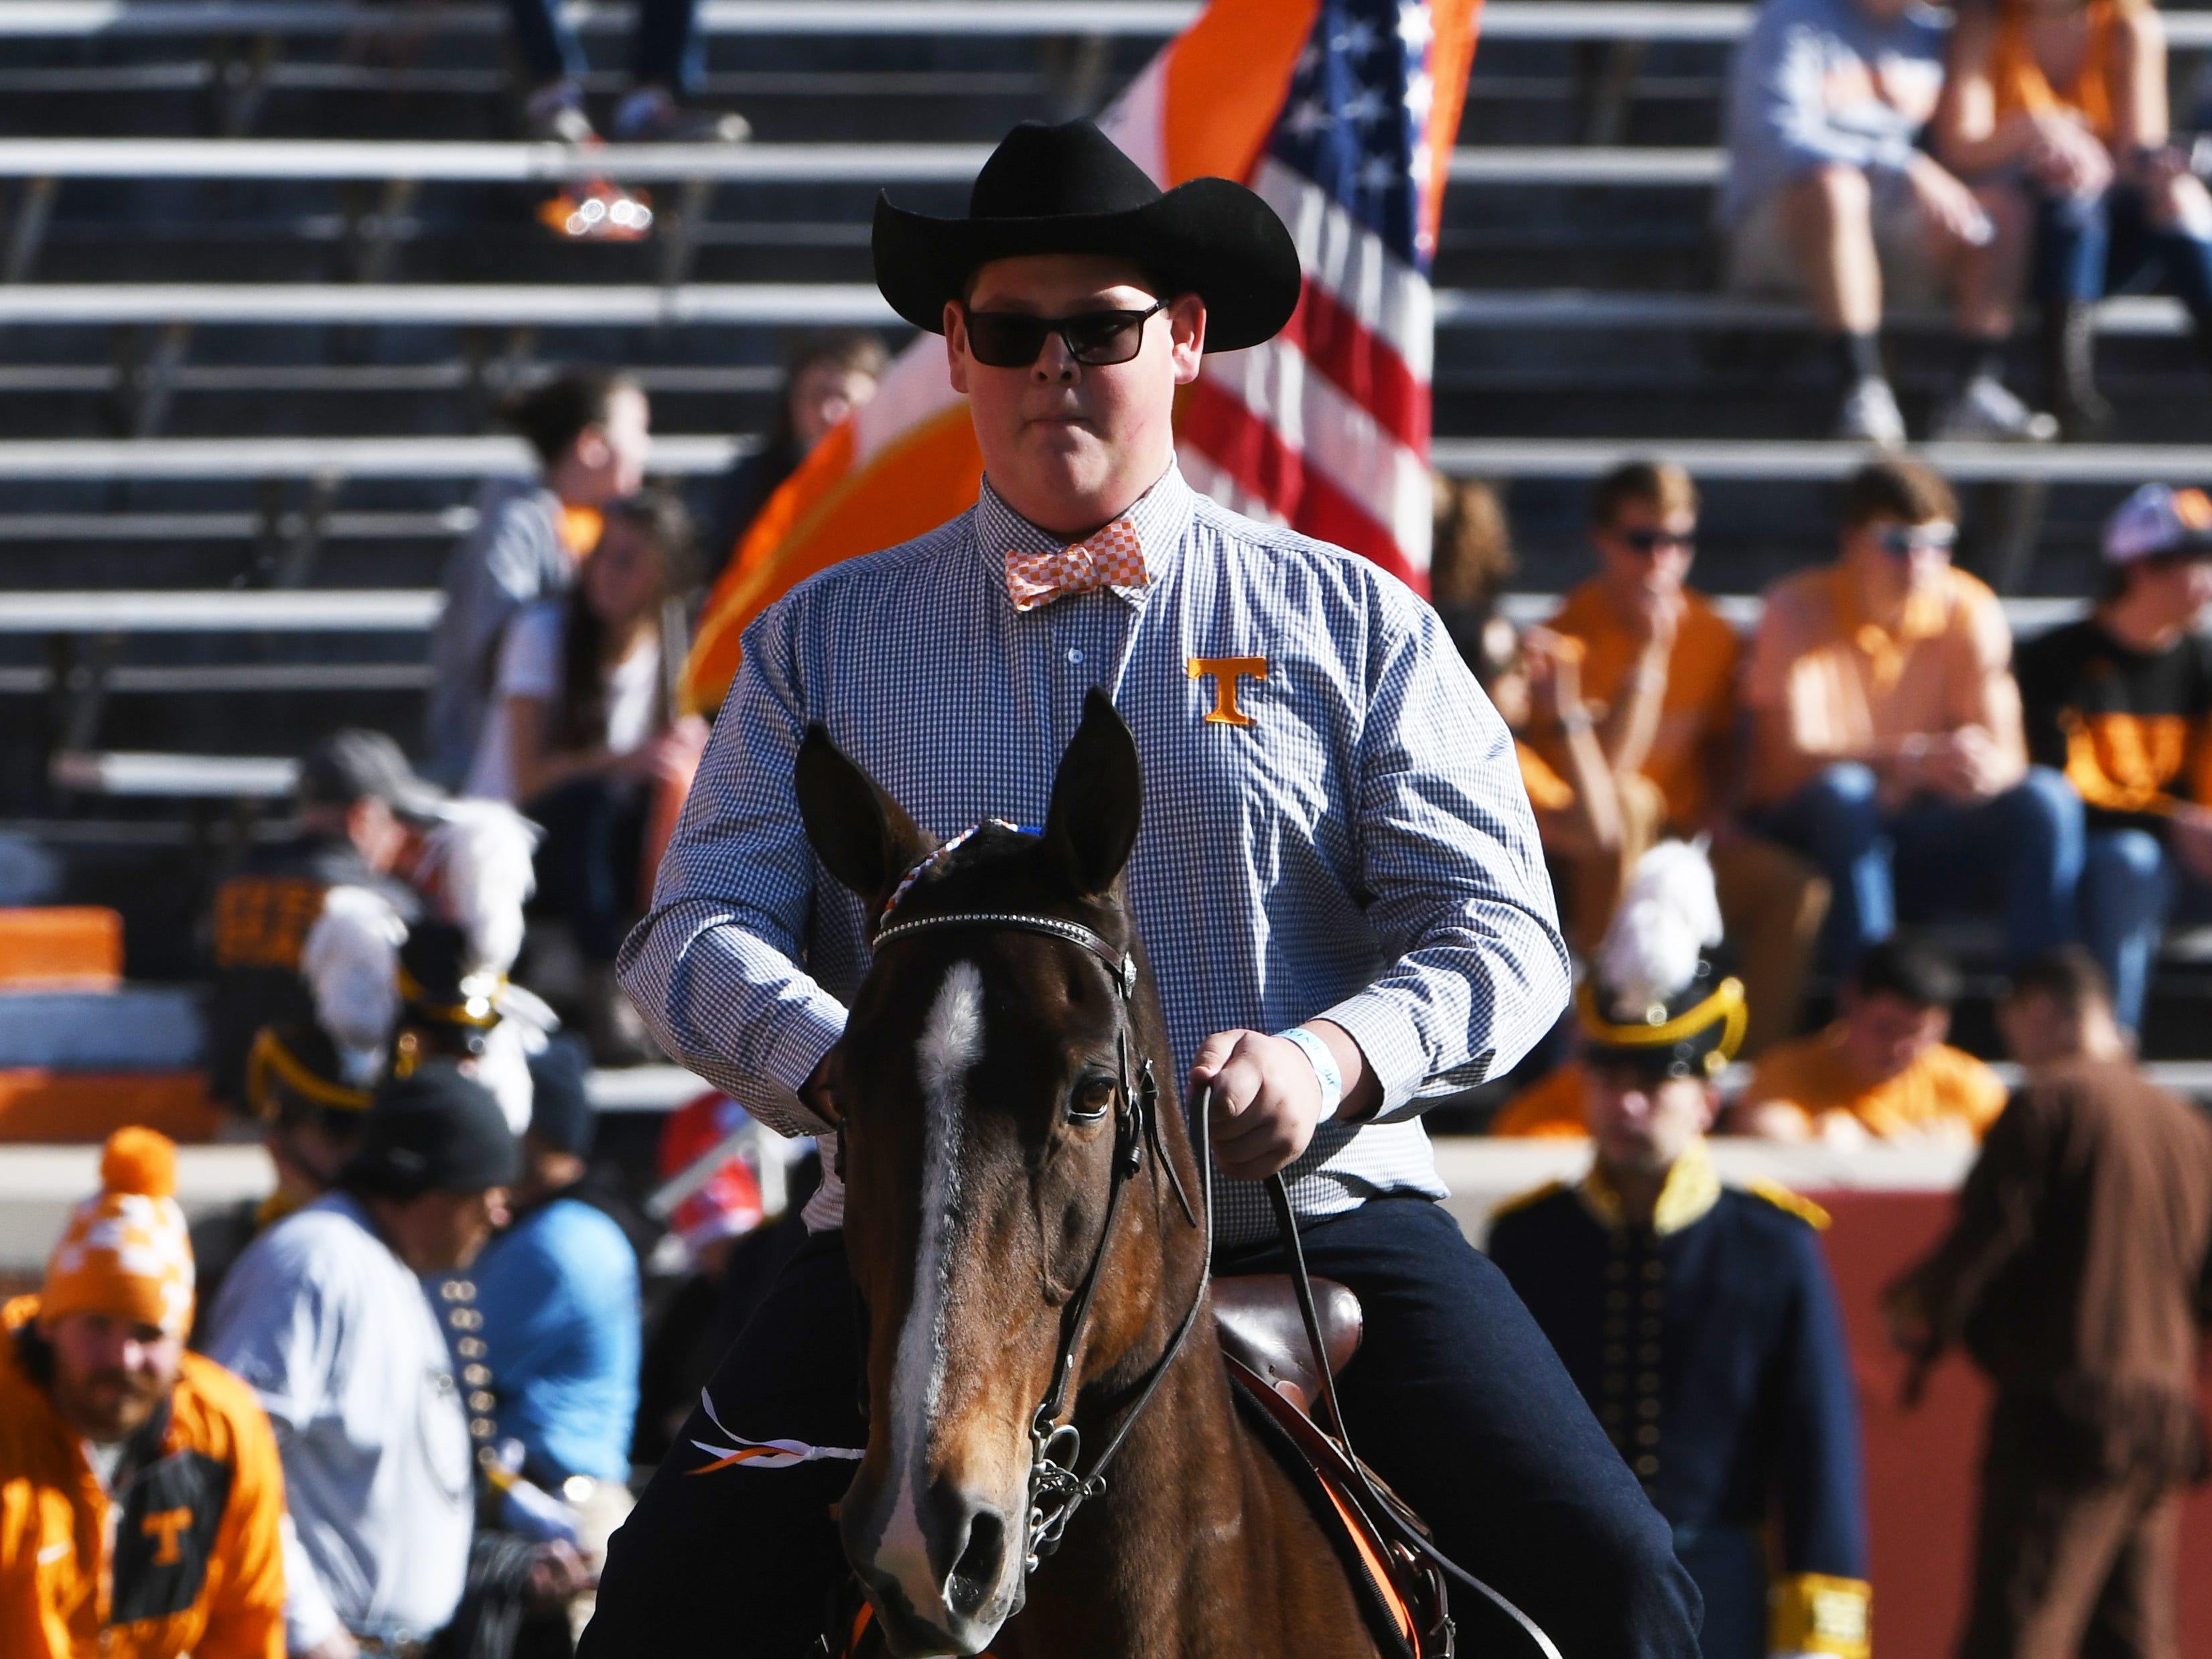 The Tennessee Walking Horse walks around the stadium during the homecoming game between Tennessee and Charlotte outside of Neyland Stadium Saturday, Nov. 3, 2018.